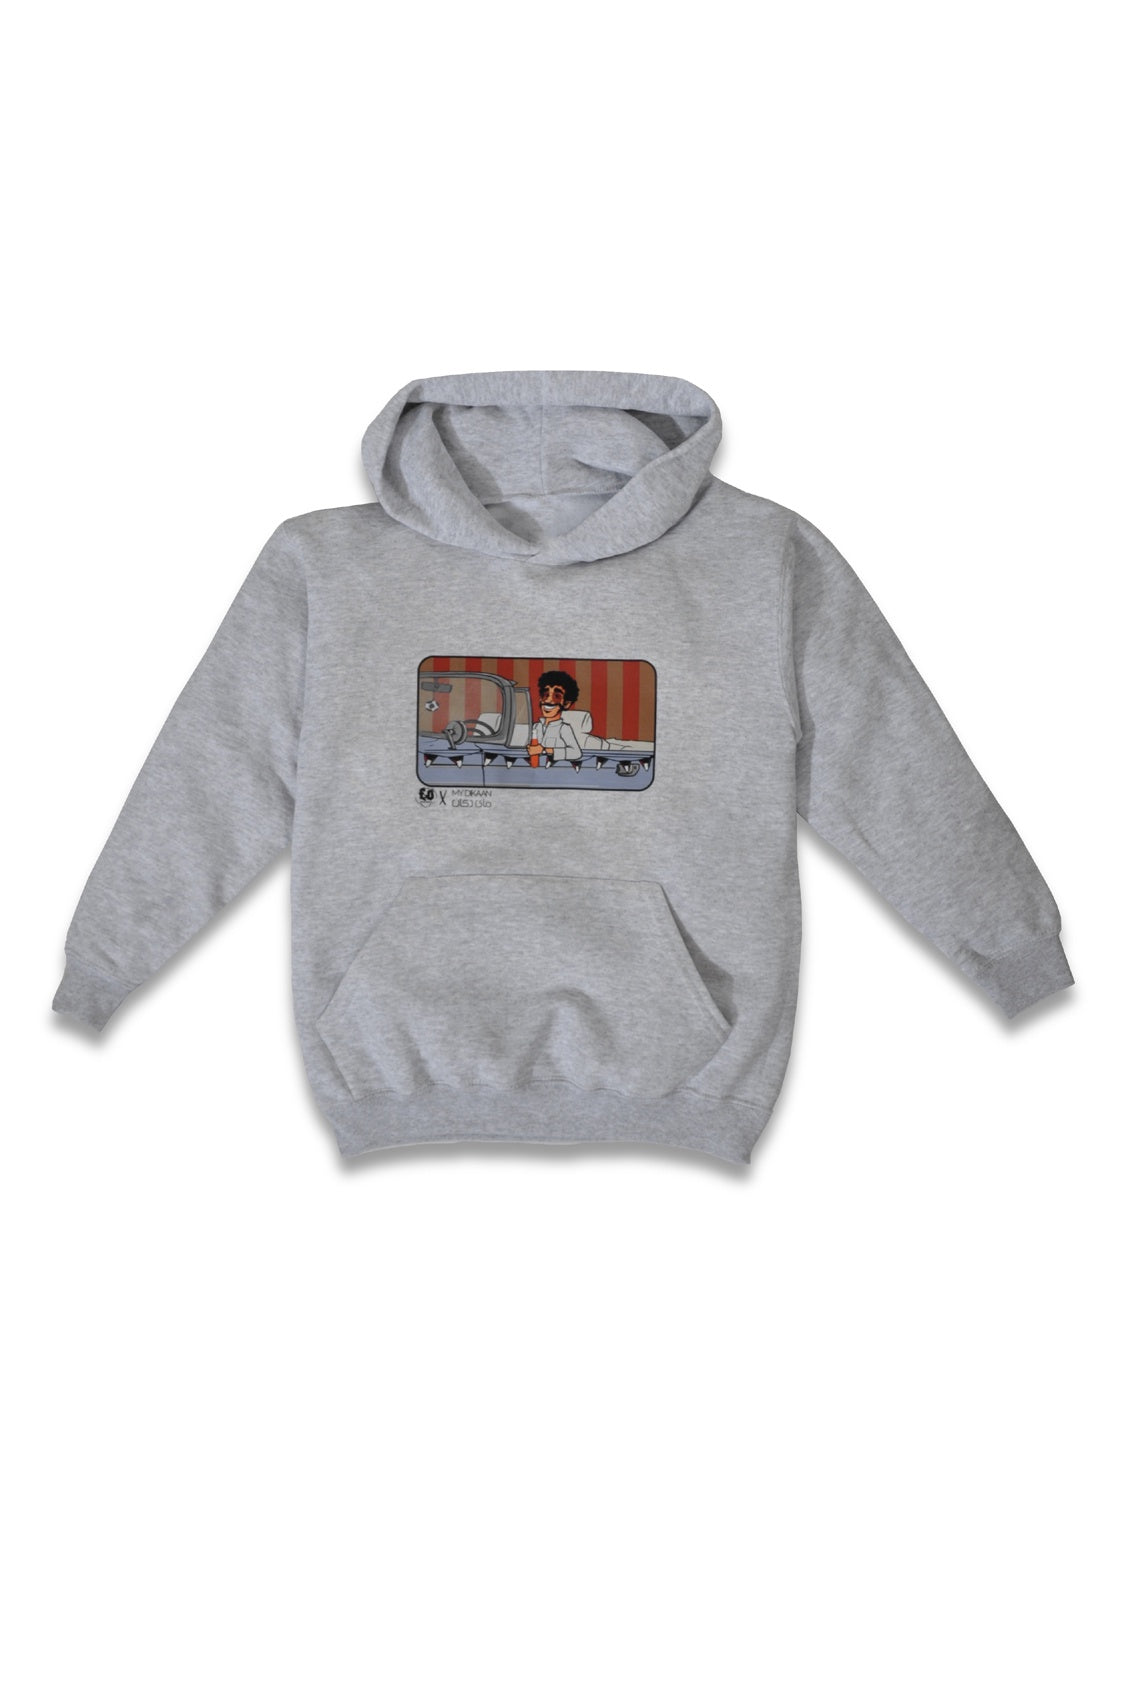 70'S MAN KIDS SWEATSHIRT - GRAY